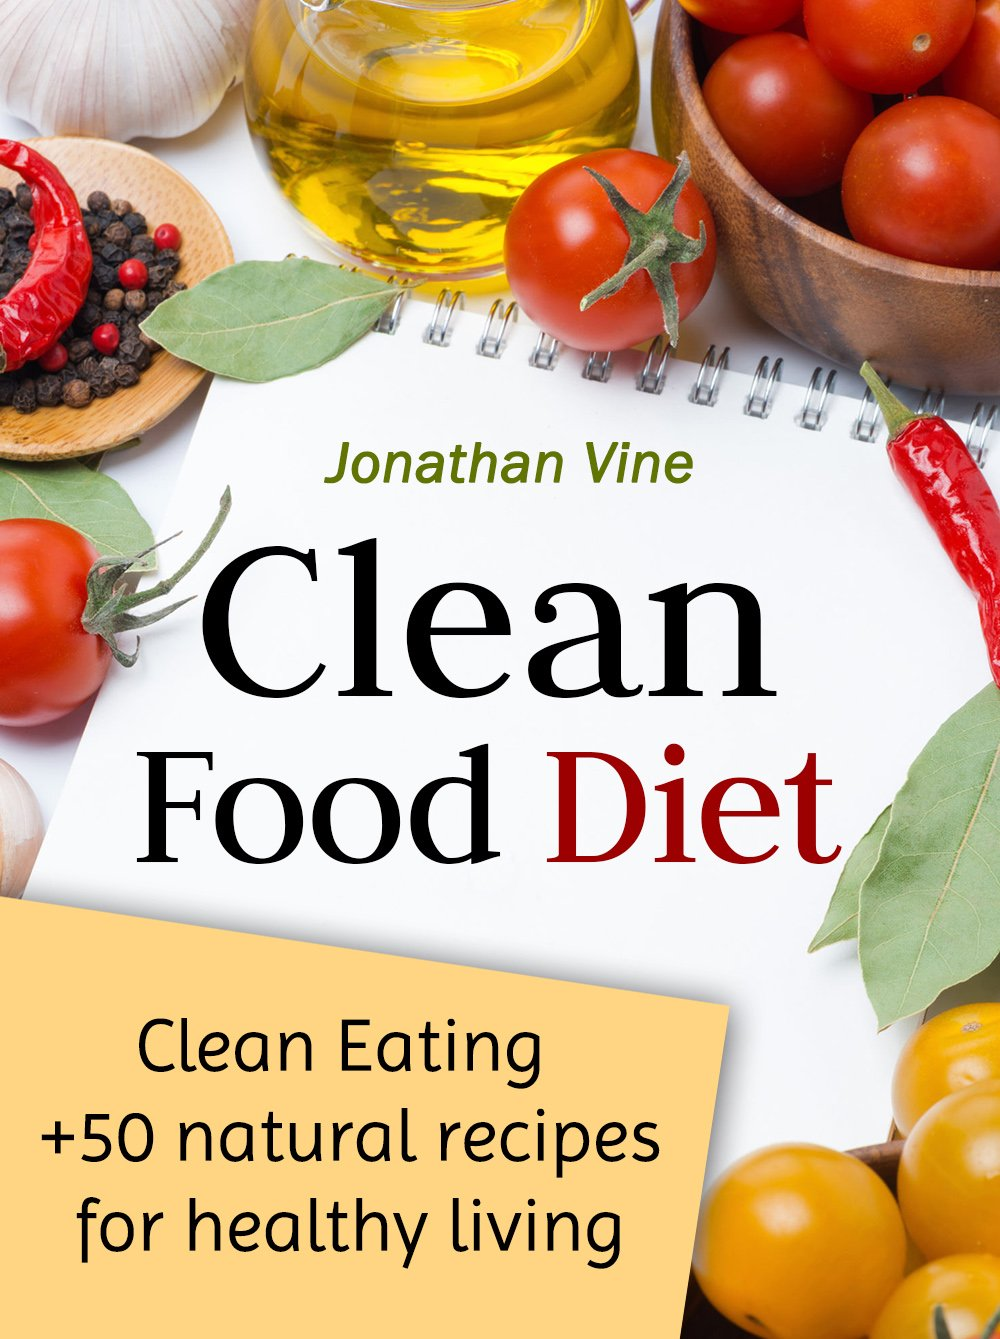 http://www.amazon.com/Clean-Food-Diet-Vegetarian-Collection-ebook/dp/B00O062AU8/ref=as_sl_pc_ss_til?tag=lettfromahome-20&linkCode=w01&linkId=I4NIPJJ4YNF7LZV6&creativeASIN=B00O062AU8